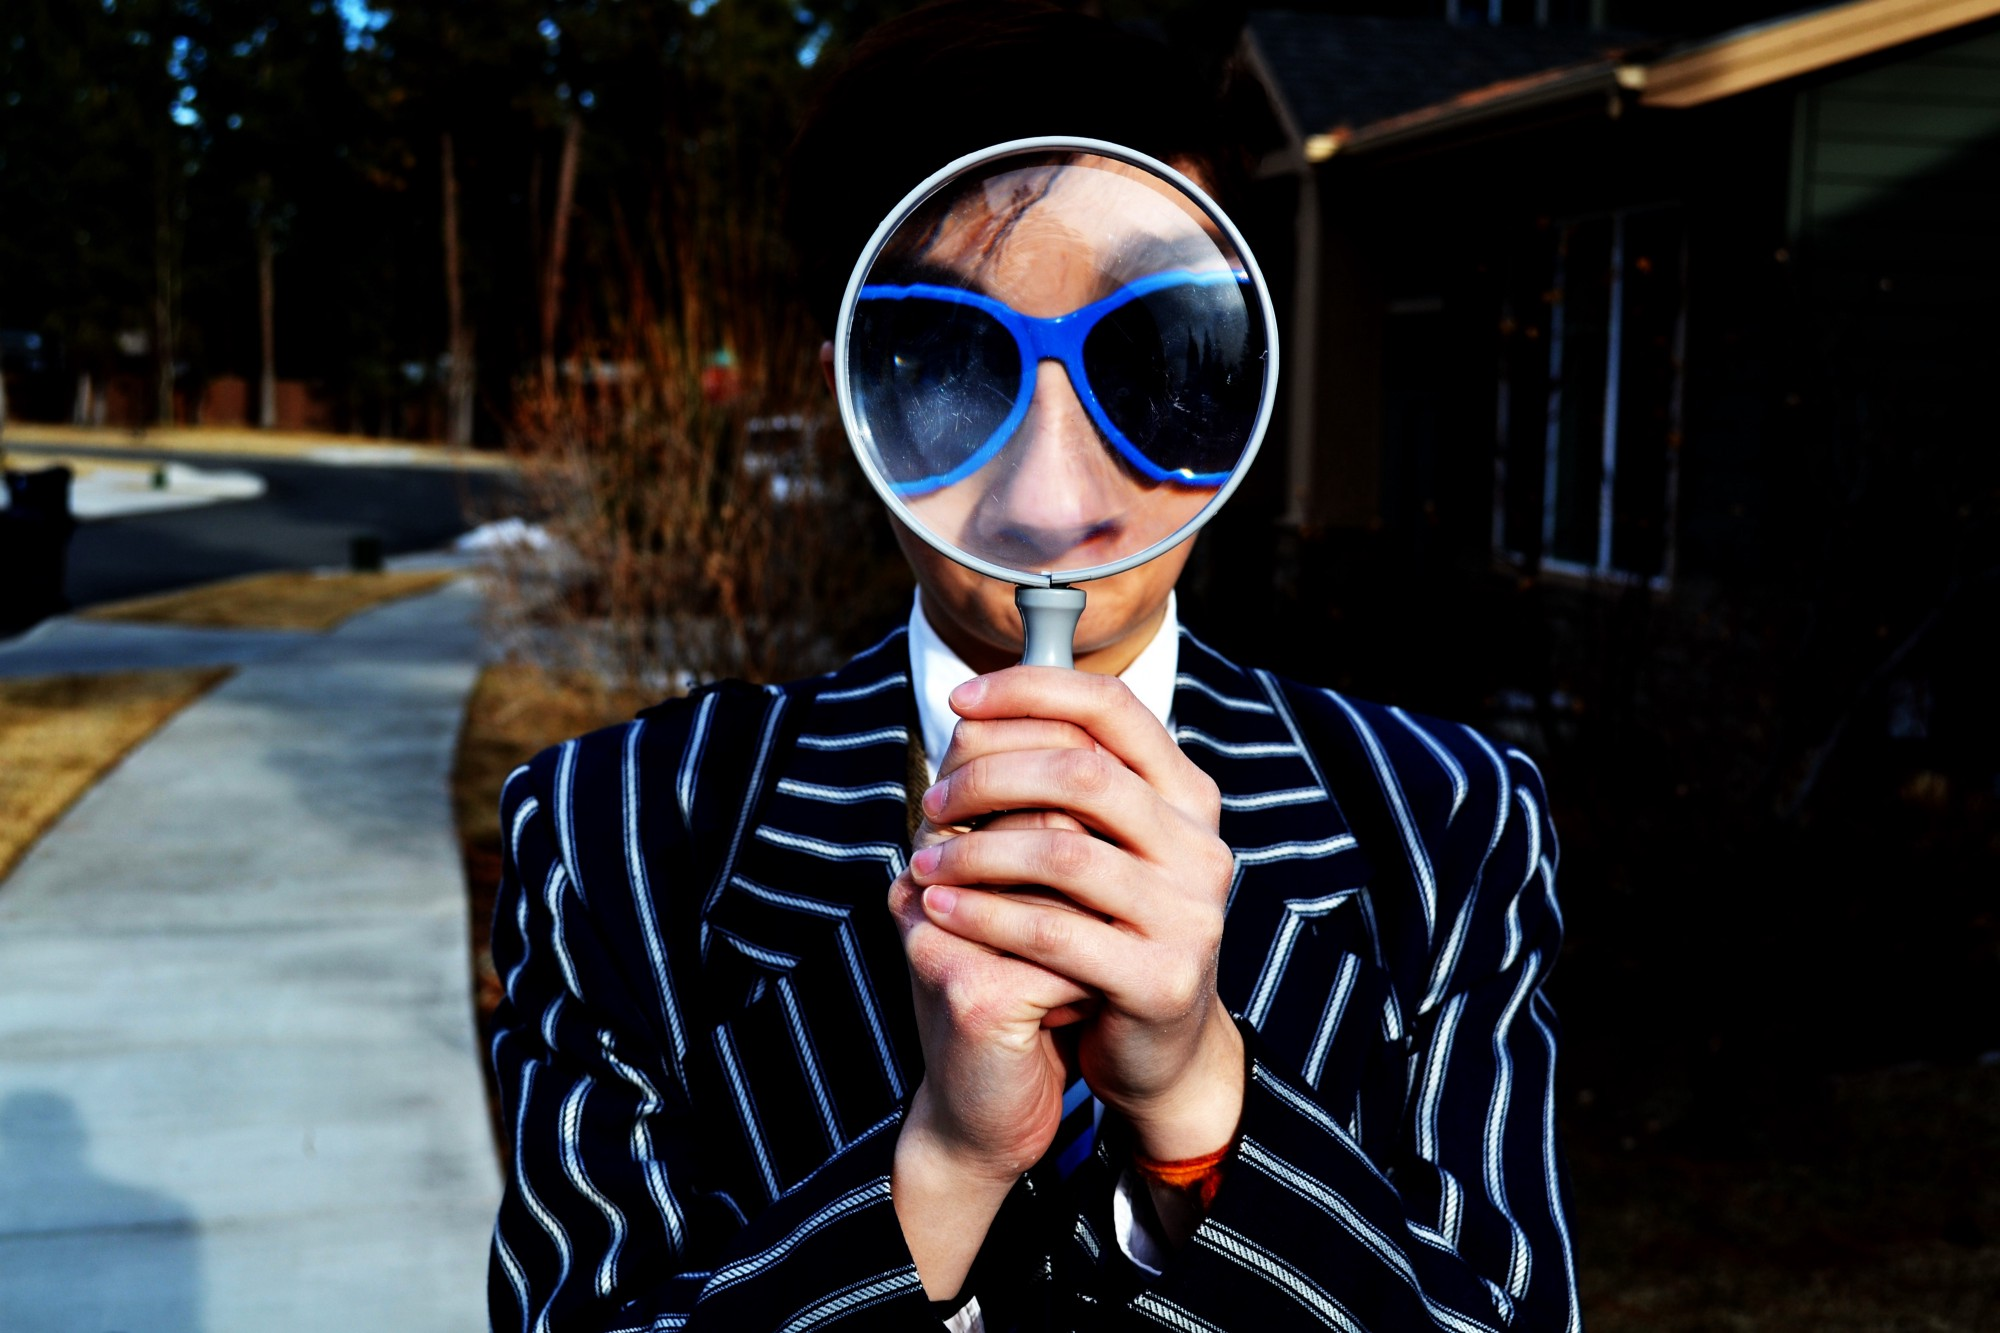 A person with a magnifier on her face